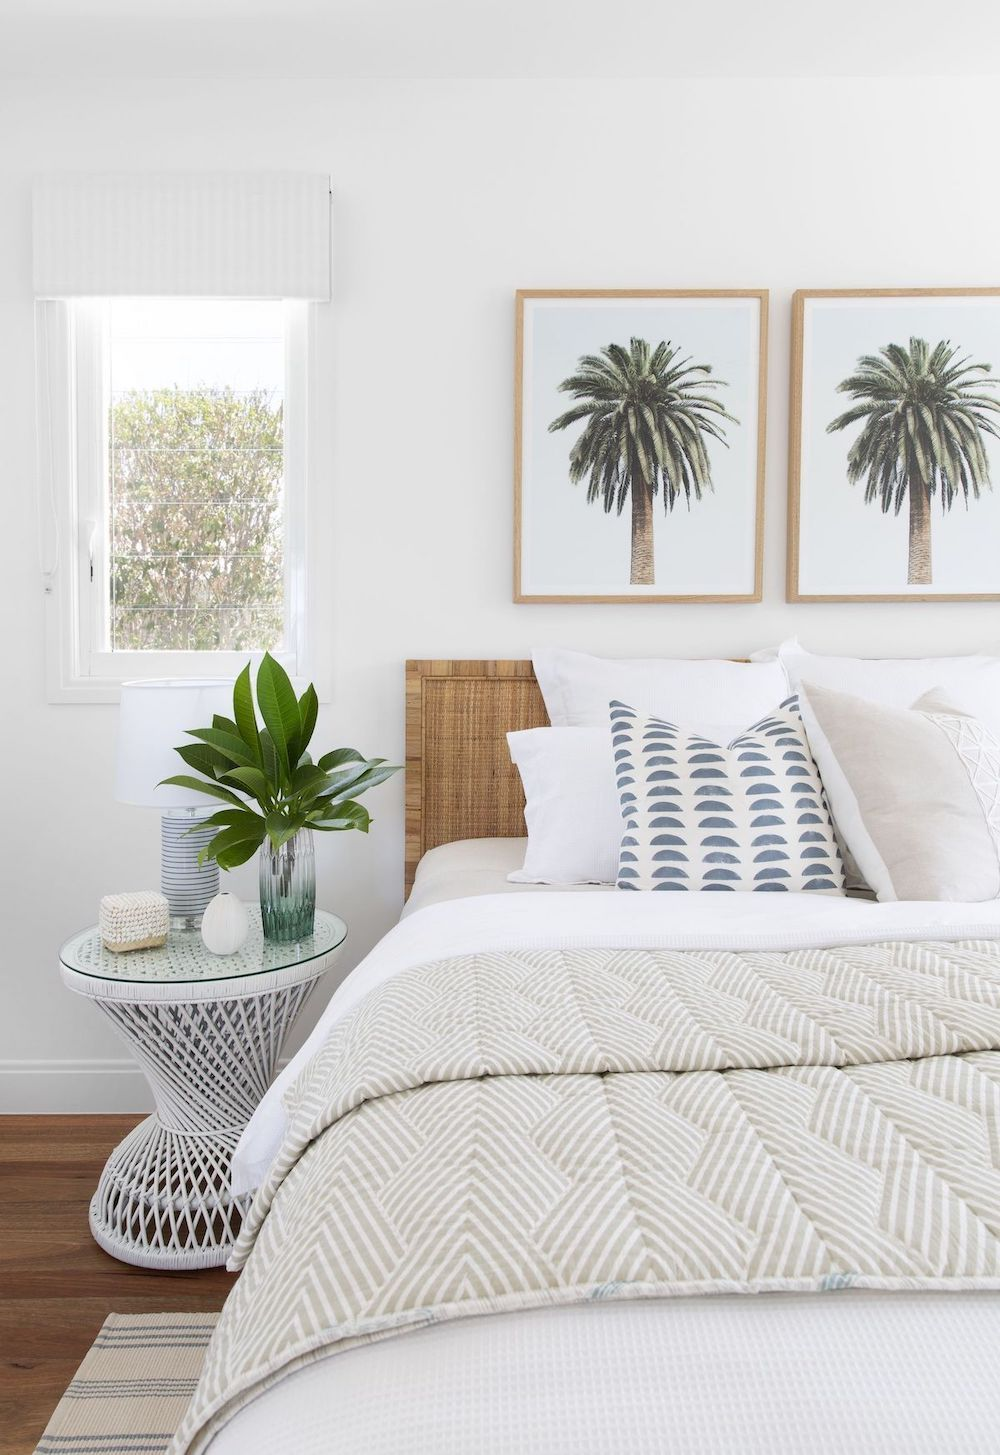 9 Dreamy Coastal Bedrooms to Inspire You